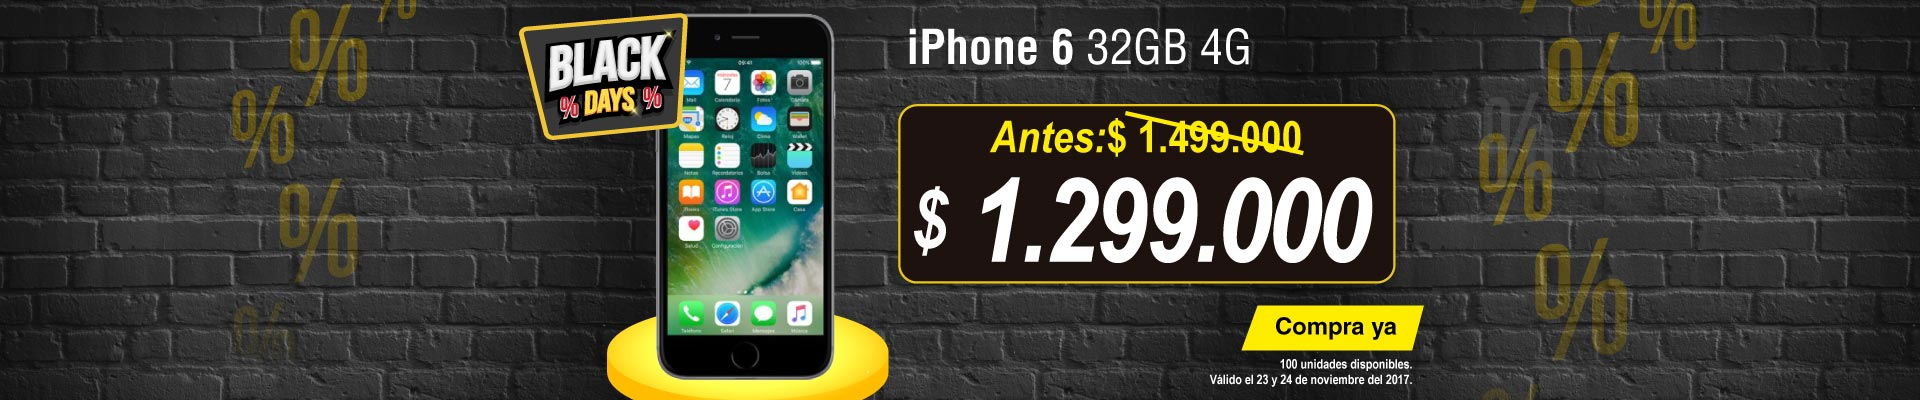 PPAL ALKP-1-celulares-iPhone 6 32GB 4G Gris-prod-noviembre23-24-blackfriday